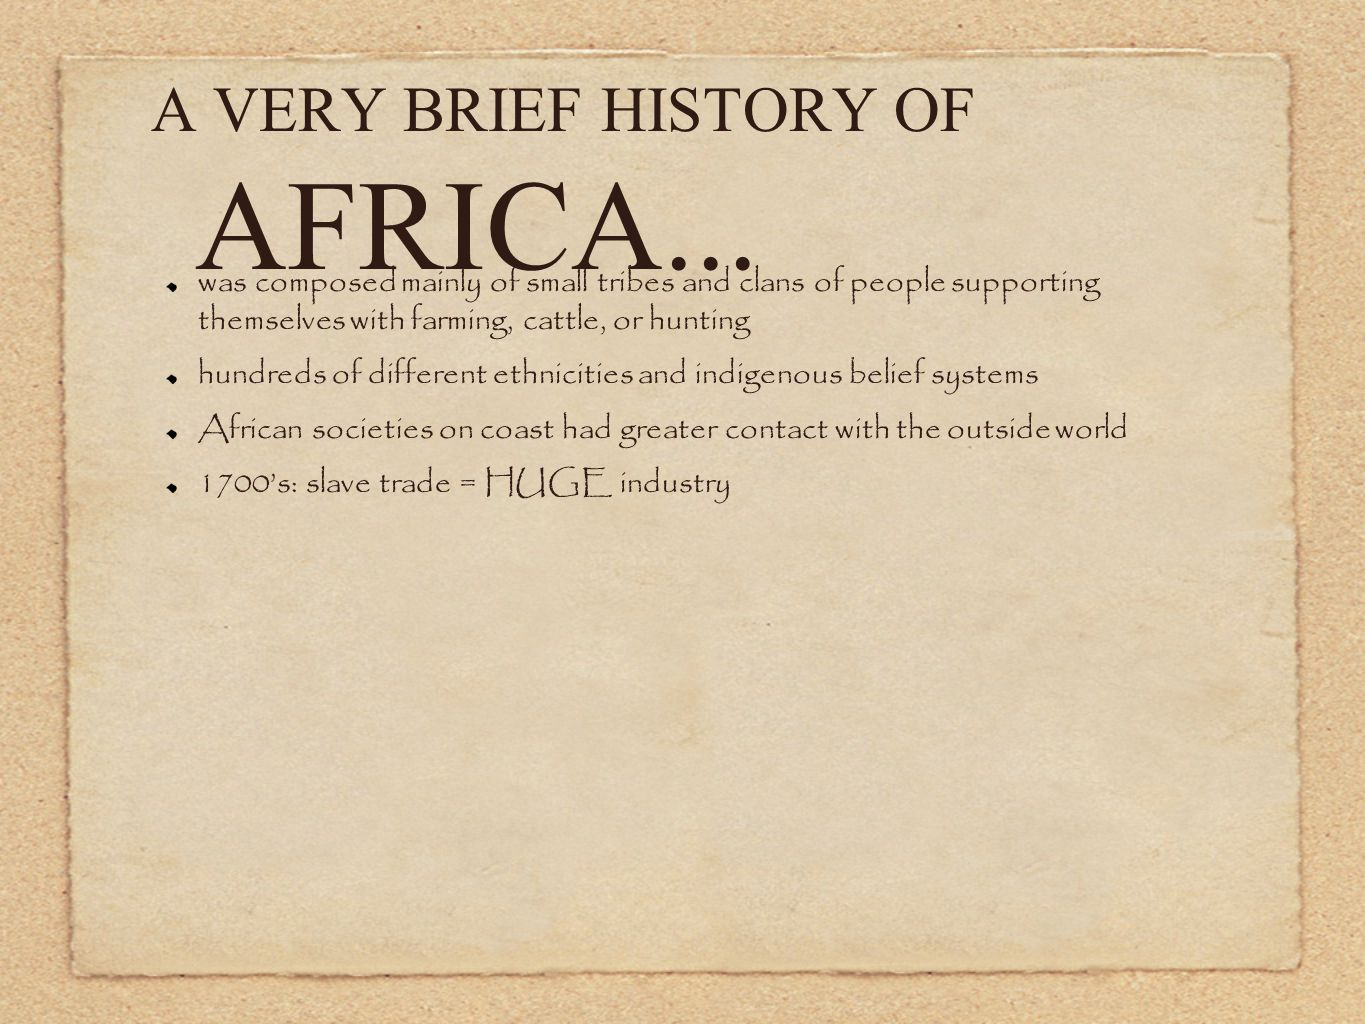 A VERY BRIEF HISTORY OF AFRICA... was composed mainly of small tribes and clans of people supporting themselves with farming, cattle, or hunting hundr